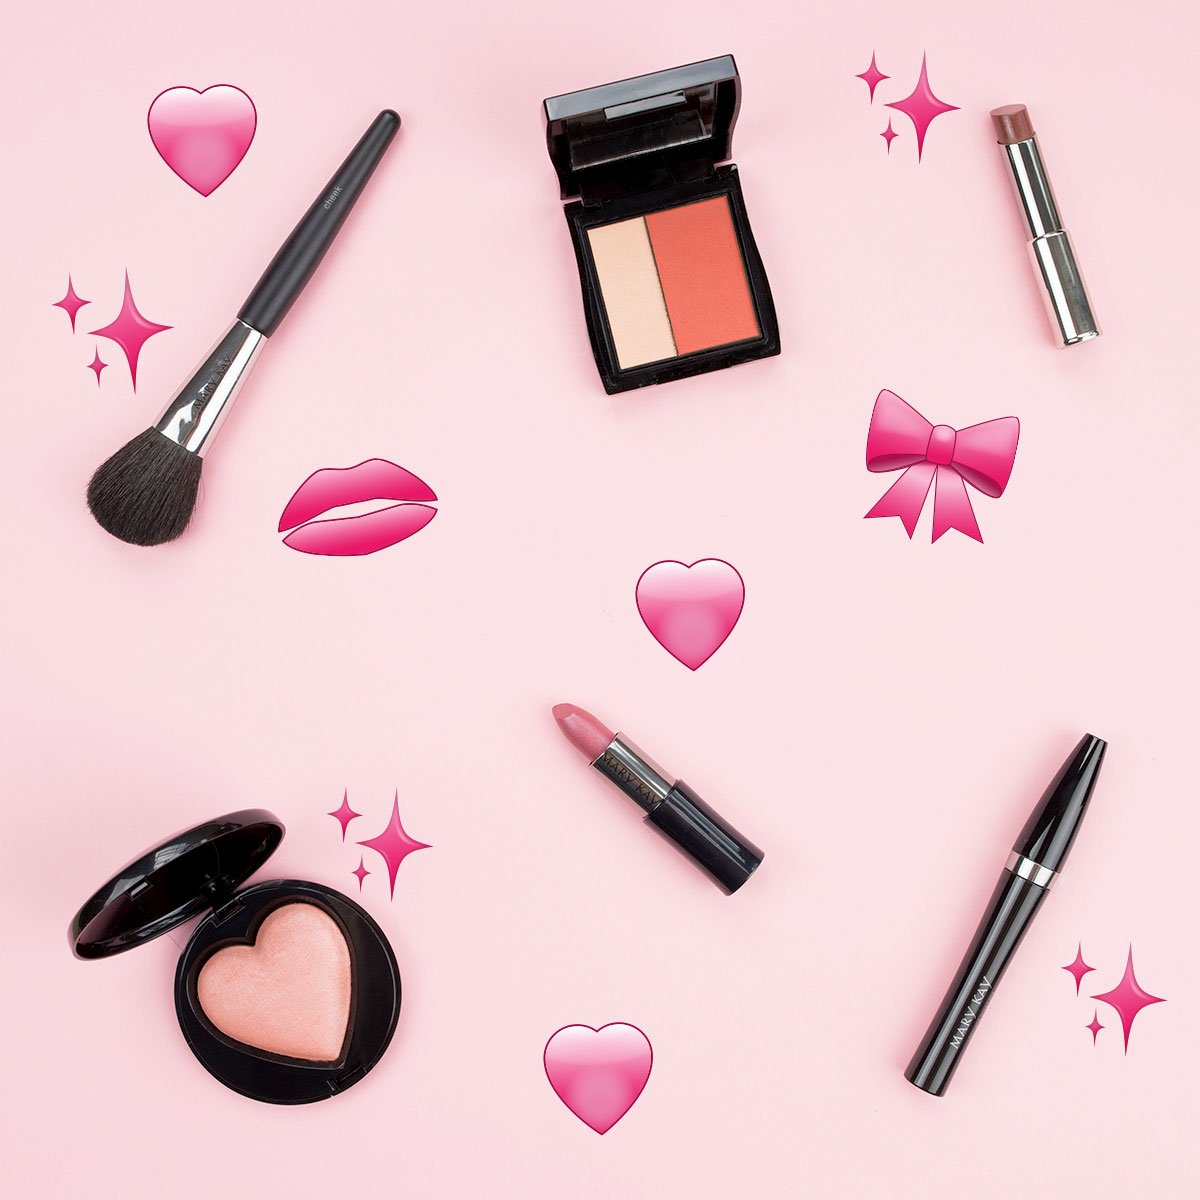 RT @MaryKay: Express yourself! Happy #WorldEmojiDay beauties; what pink emoji is your favorite?💄👛💋🌸💕🌷🎀💗 https://t.co/TIGzPGovoa